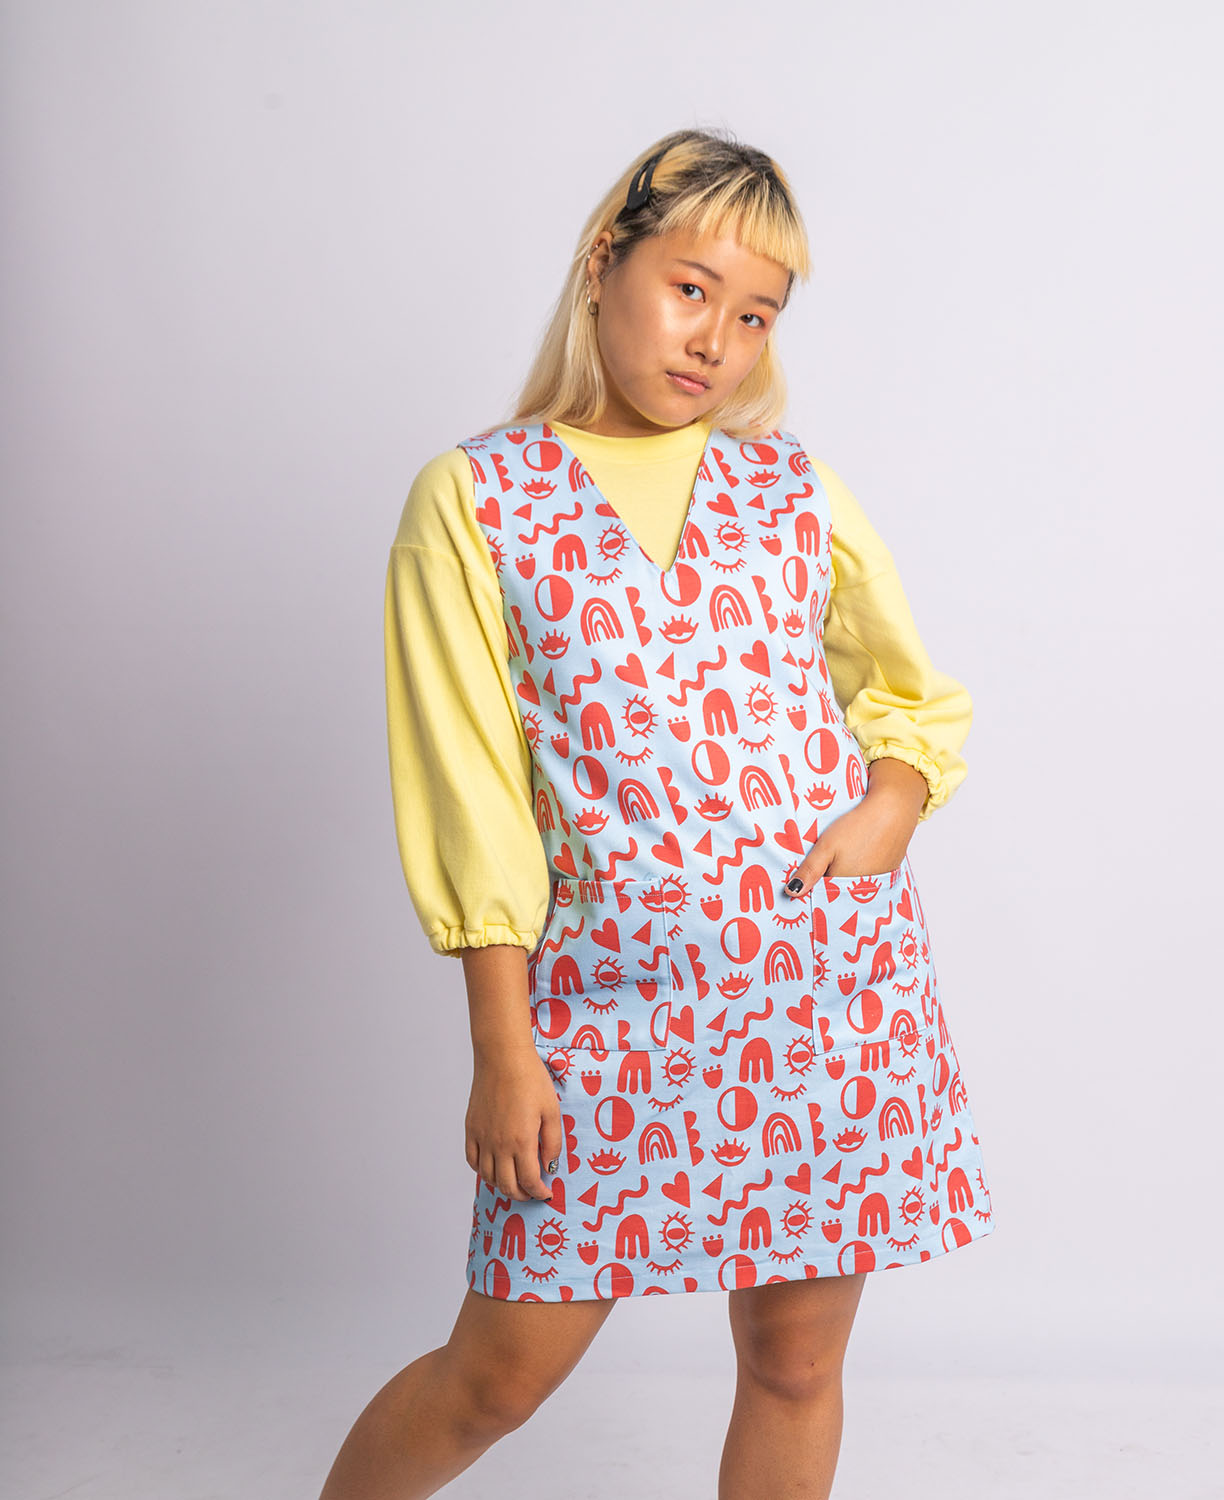 Ethical Morphed Reality Printed Tunic - Taken Online